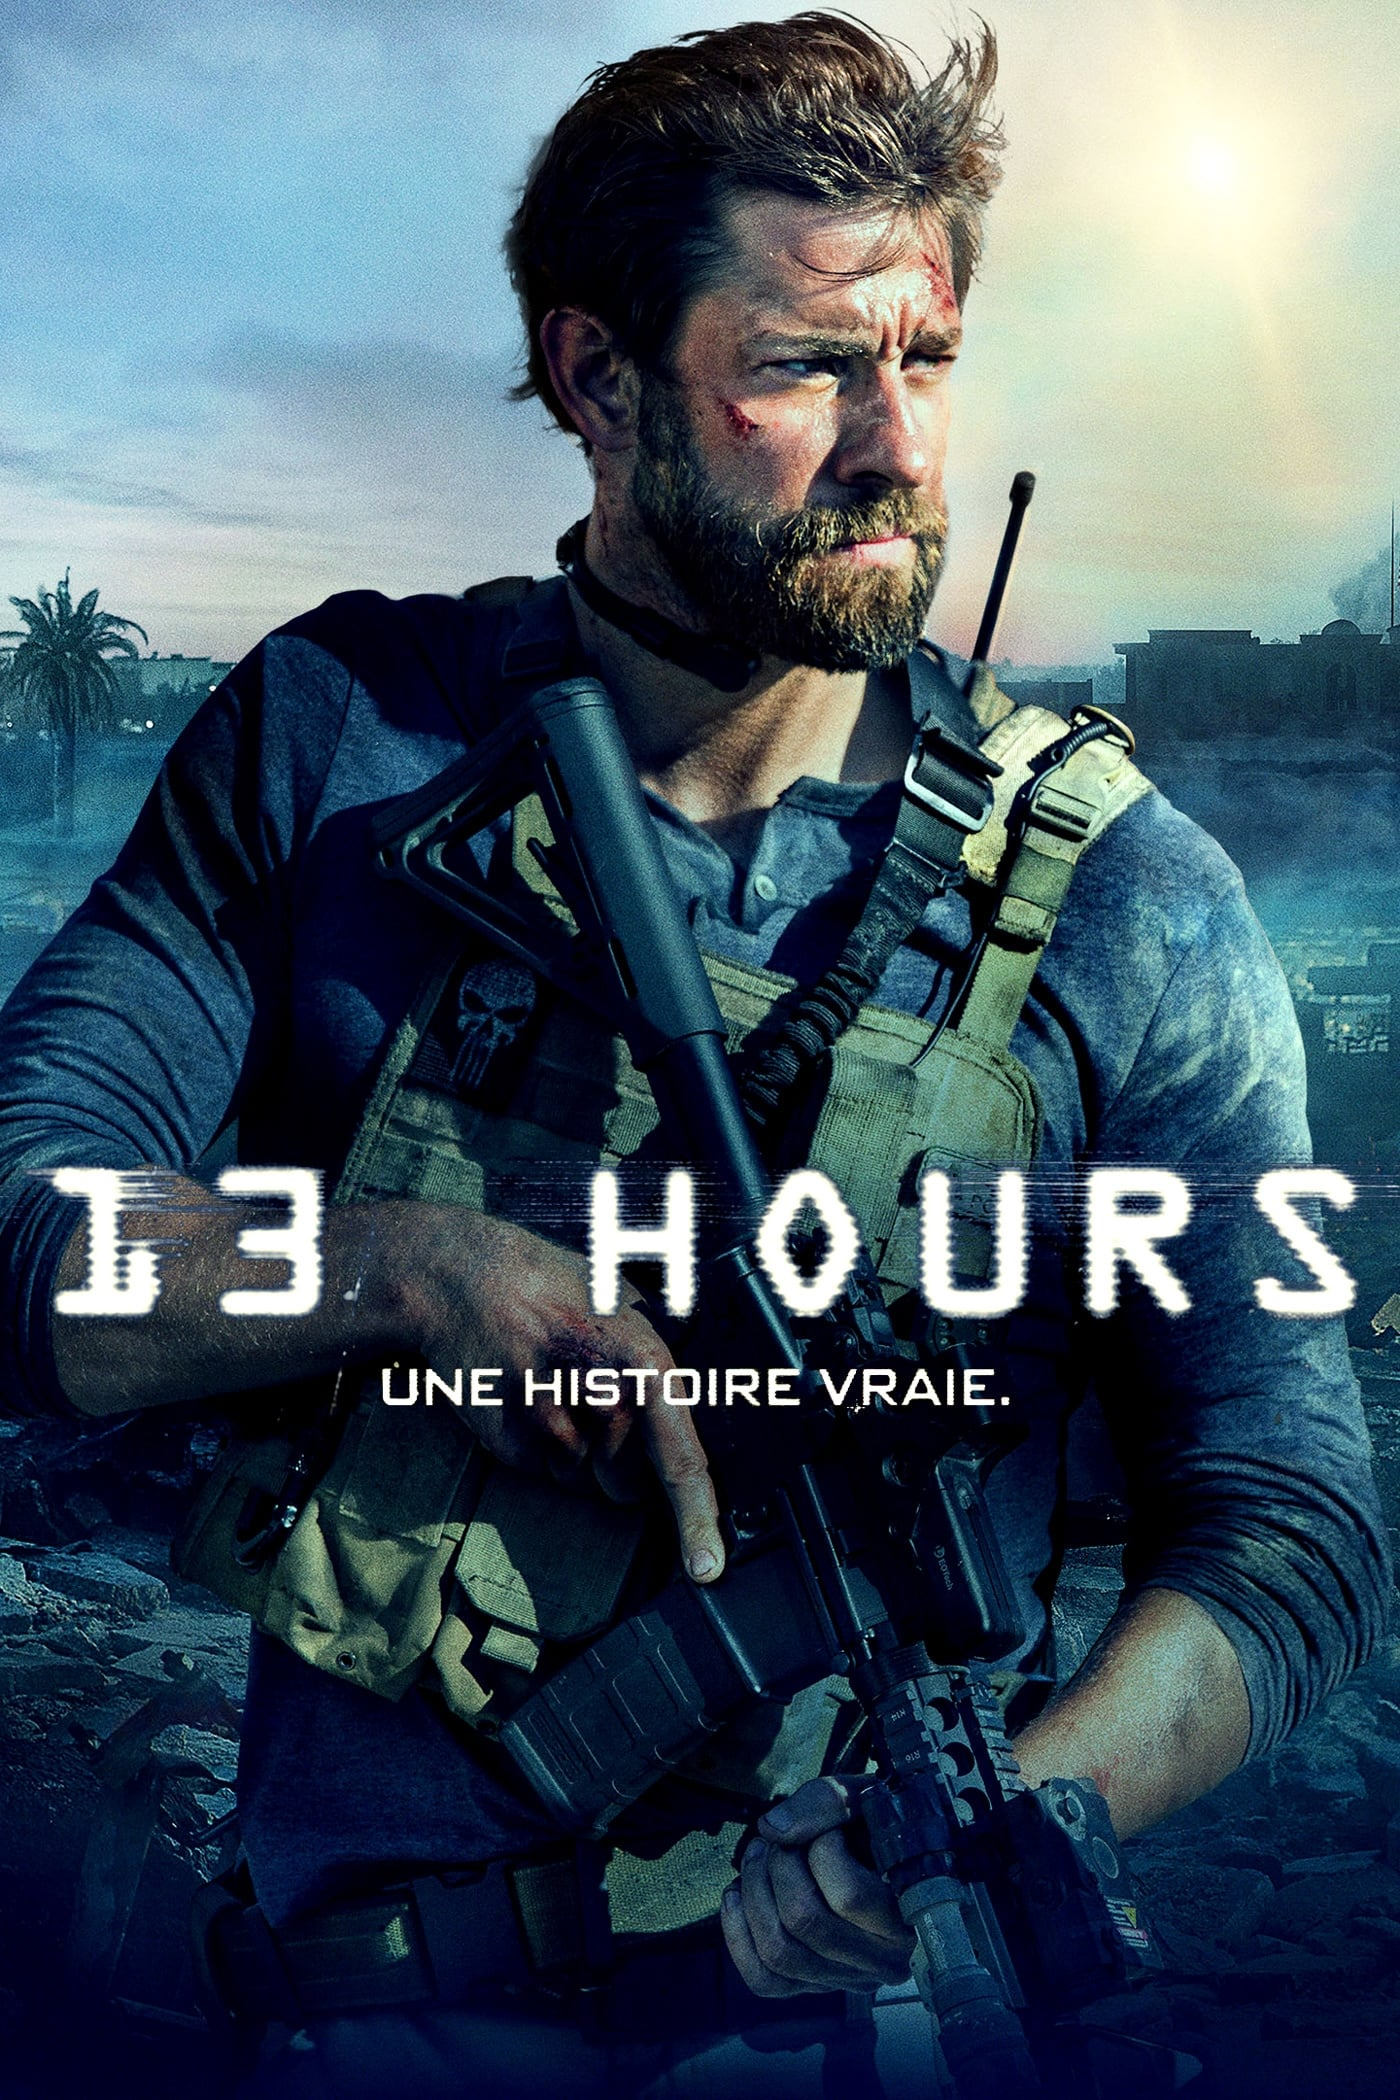 Poster and image movie Film 13 ore: soldatii secreti din Benghazi - 13 Hours: The Secret Soldiers of Benghazi - 13 Hours: The Secret Soldiers of Benghazi - 13 Hours -  2016